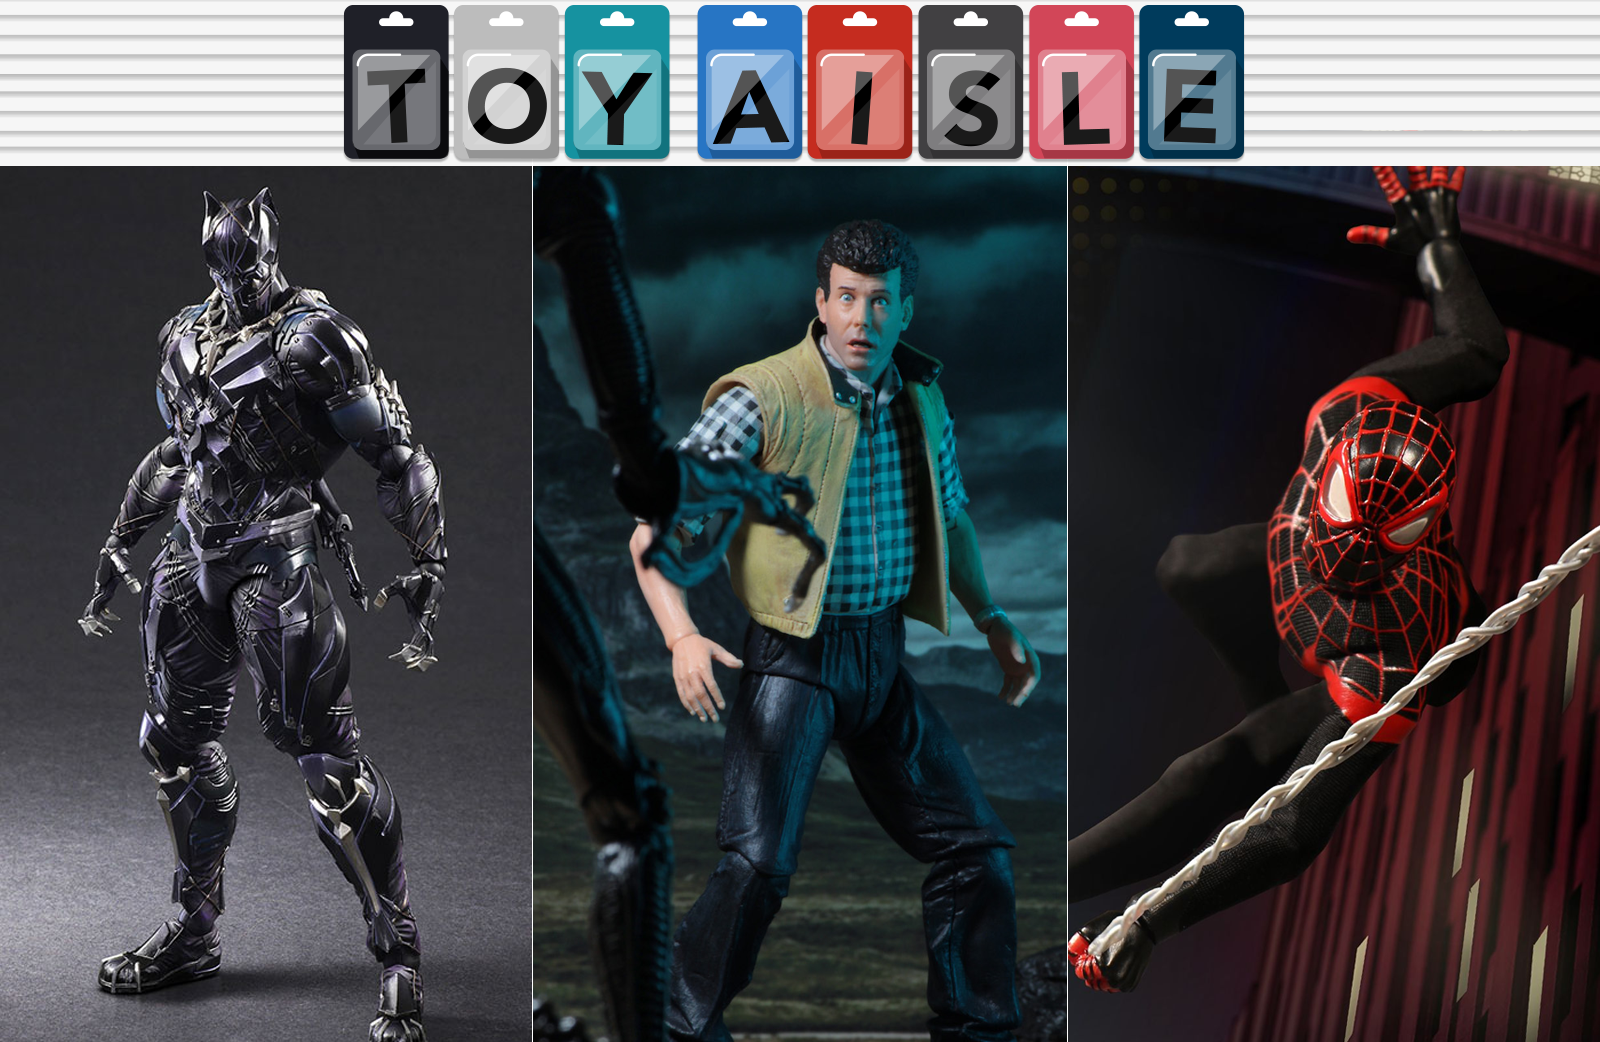 The AliensPaul Reiser Figure You've Been Waiting For, And The Rest Of The Awesome Toys We Saw This Week